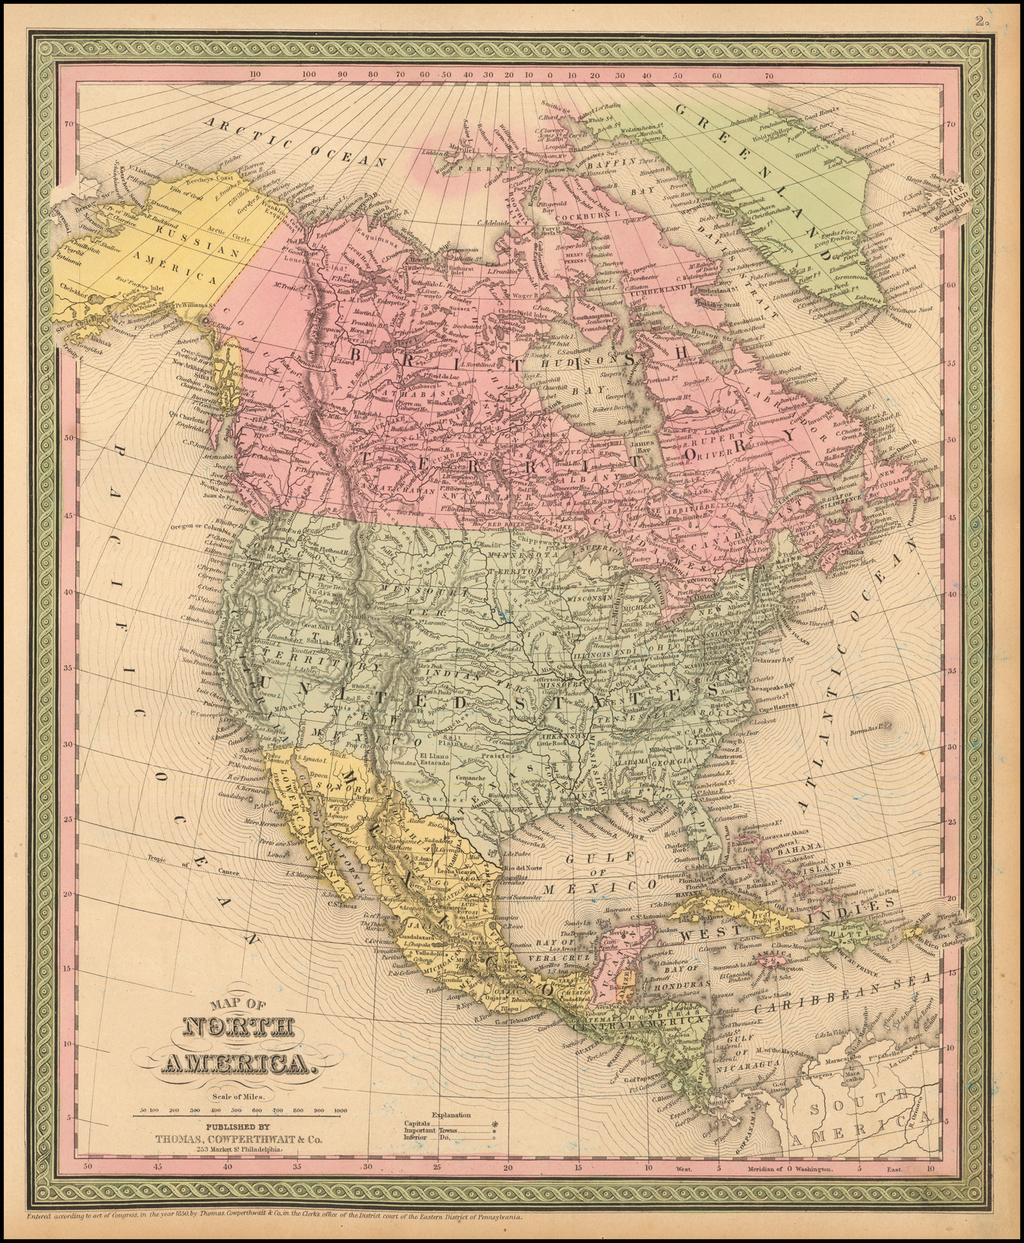 Map of North America By Thomas, Cowperthwait & Co.